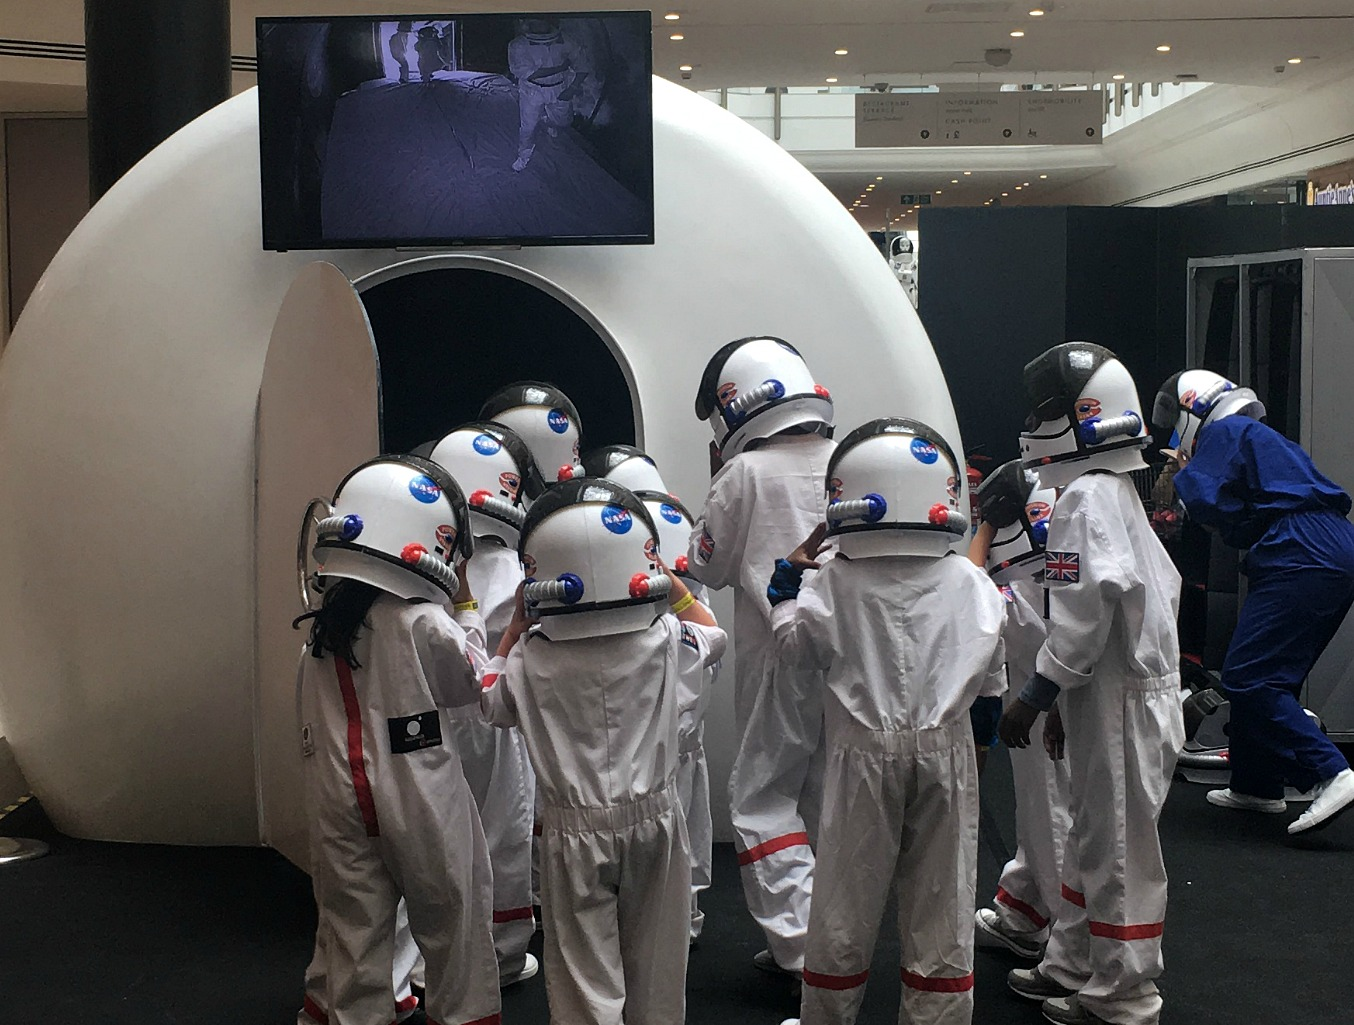 Kids on the moon at The Glades, Bromley, London